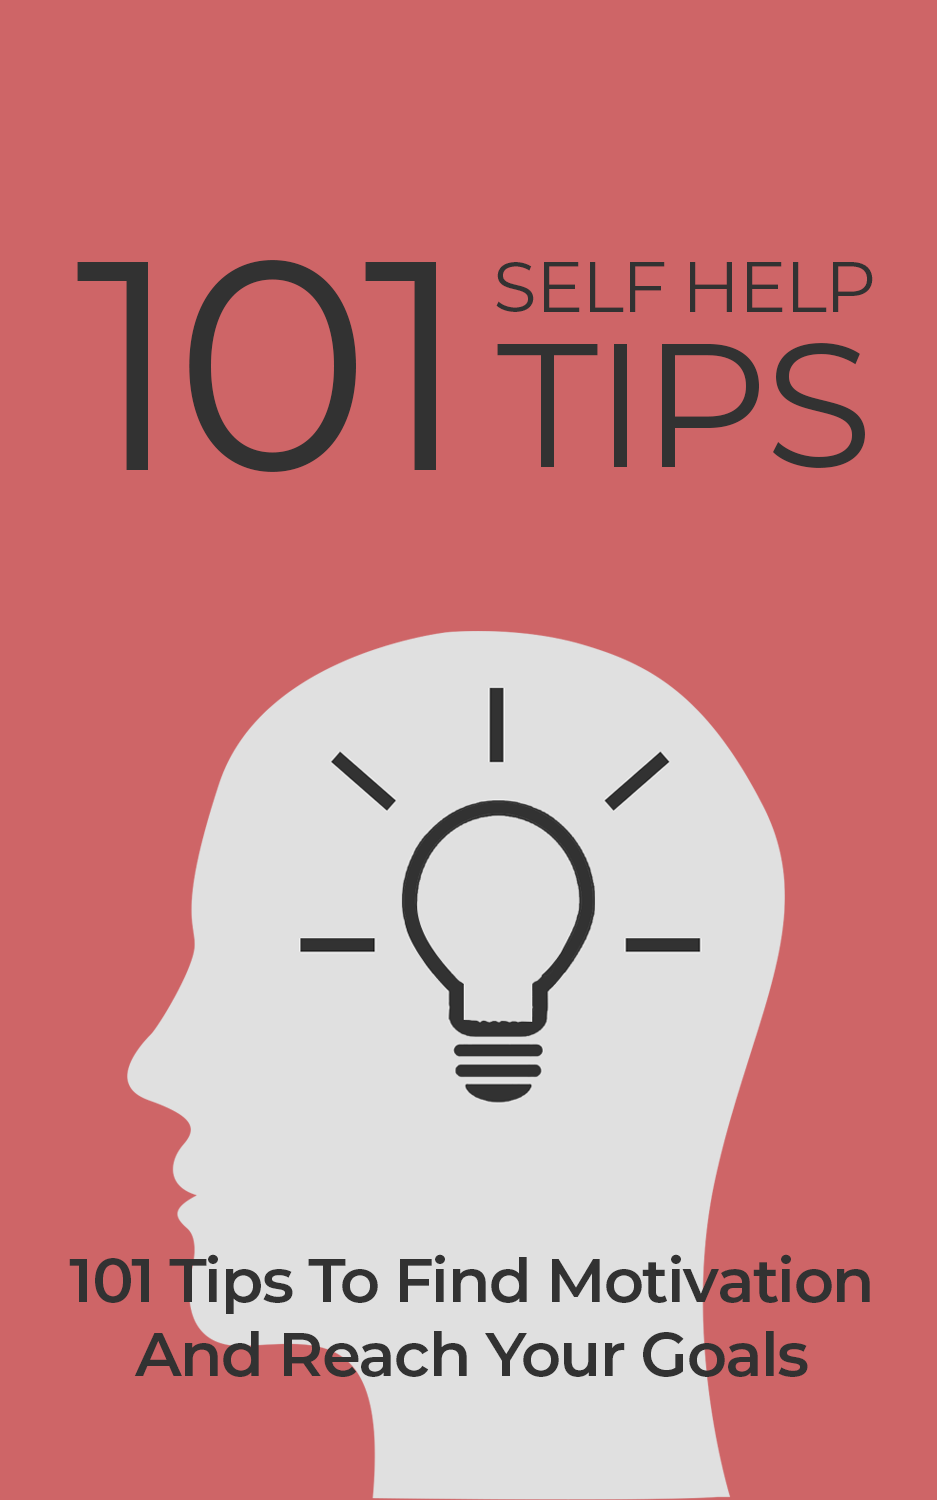 101 Self Help Tips (101 Tips To Find Motivation And Reach Your Goals) Ebook's Ebook Image